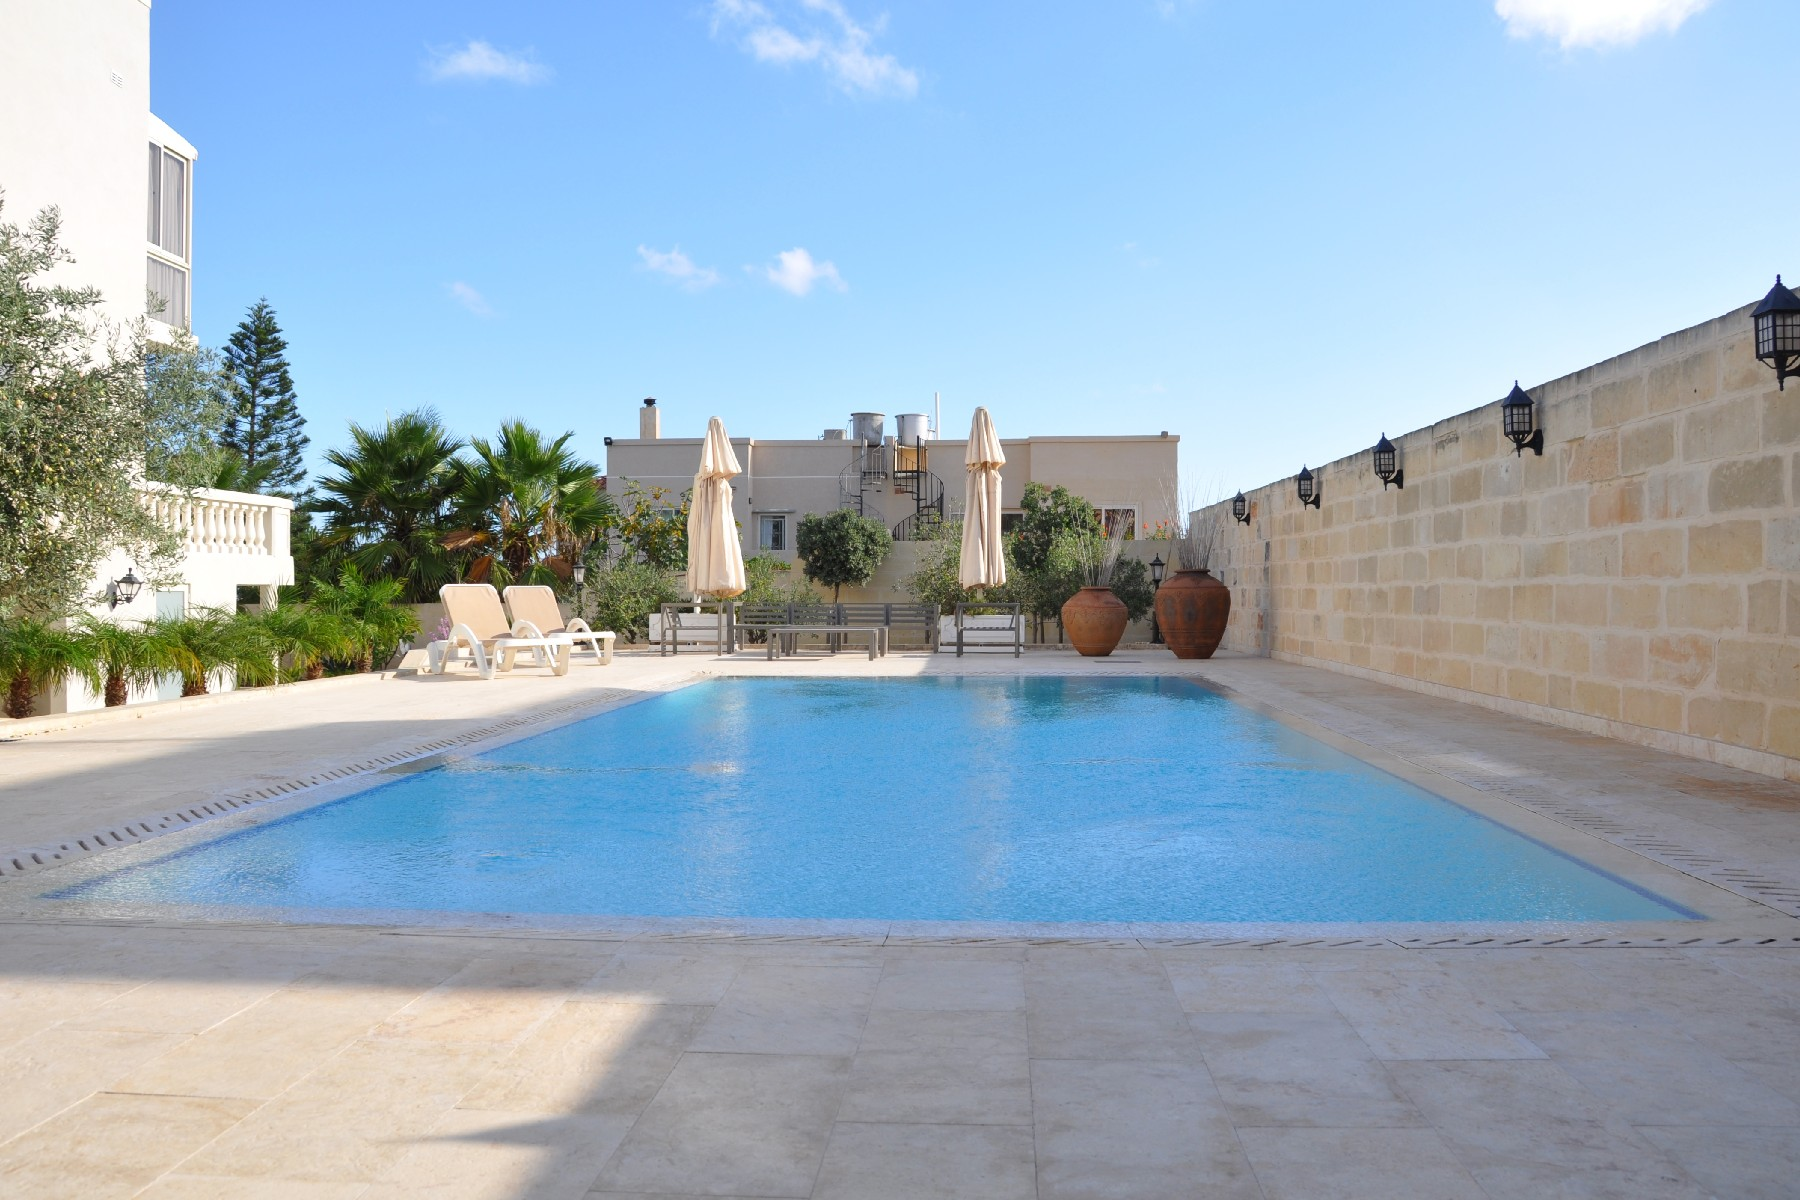 Single Family Home for Rent at Fully Detached Villa Madliena, Malta